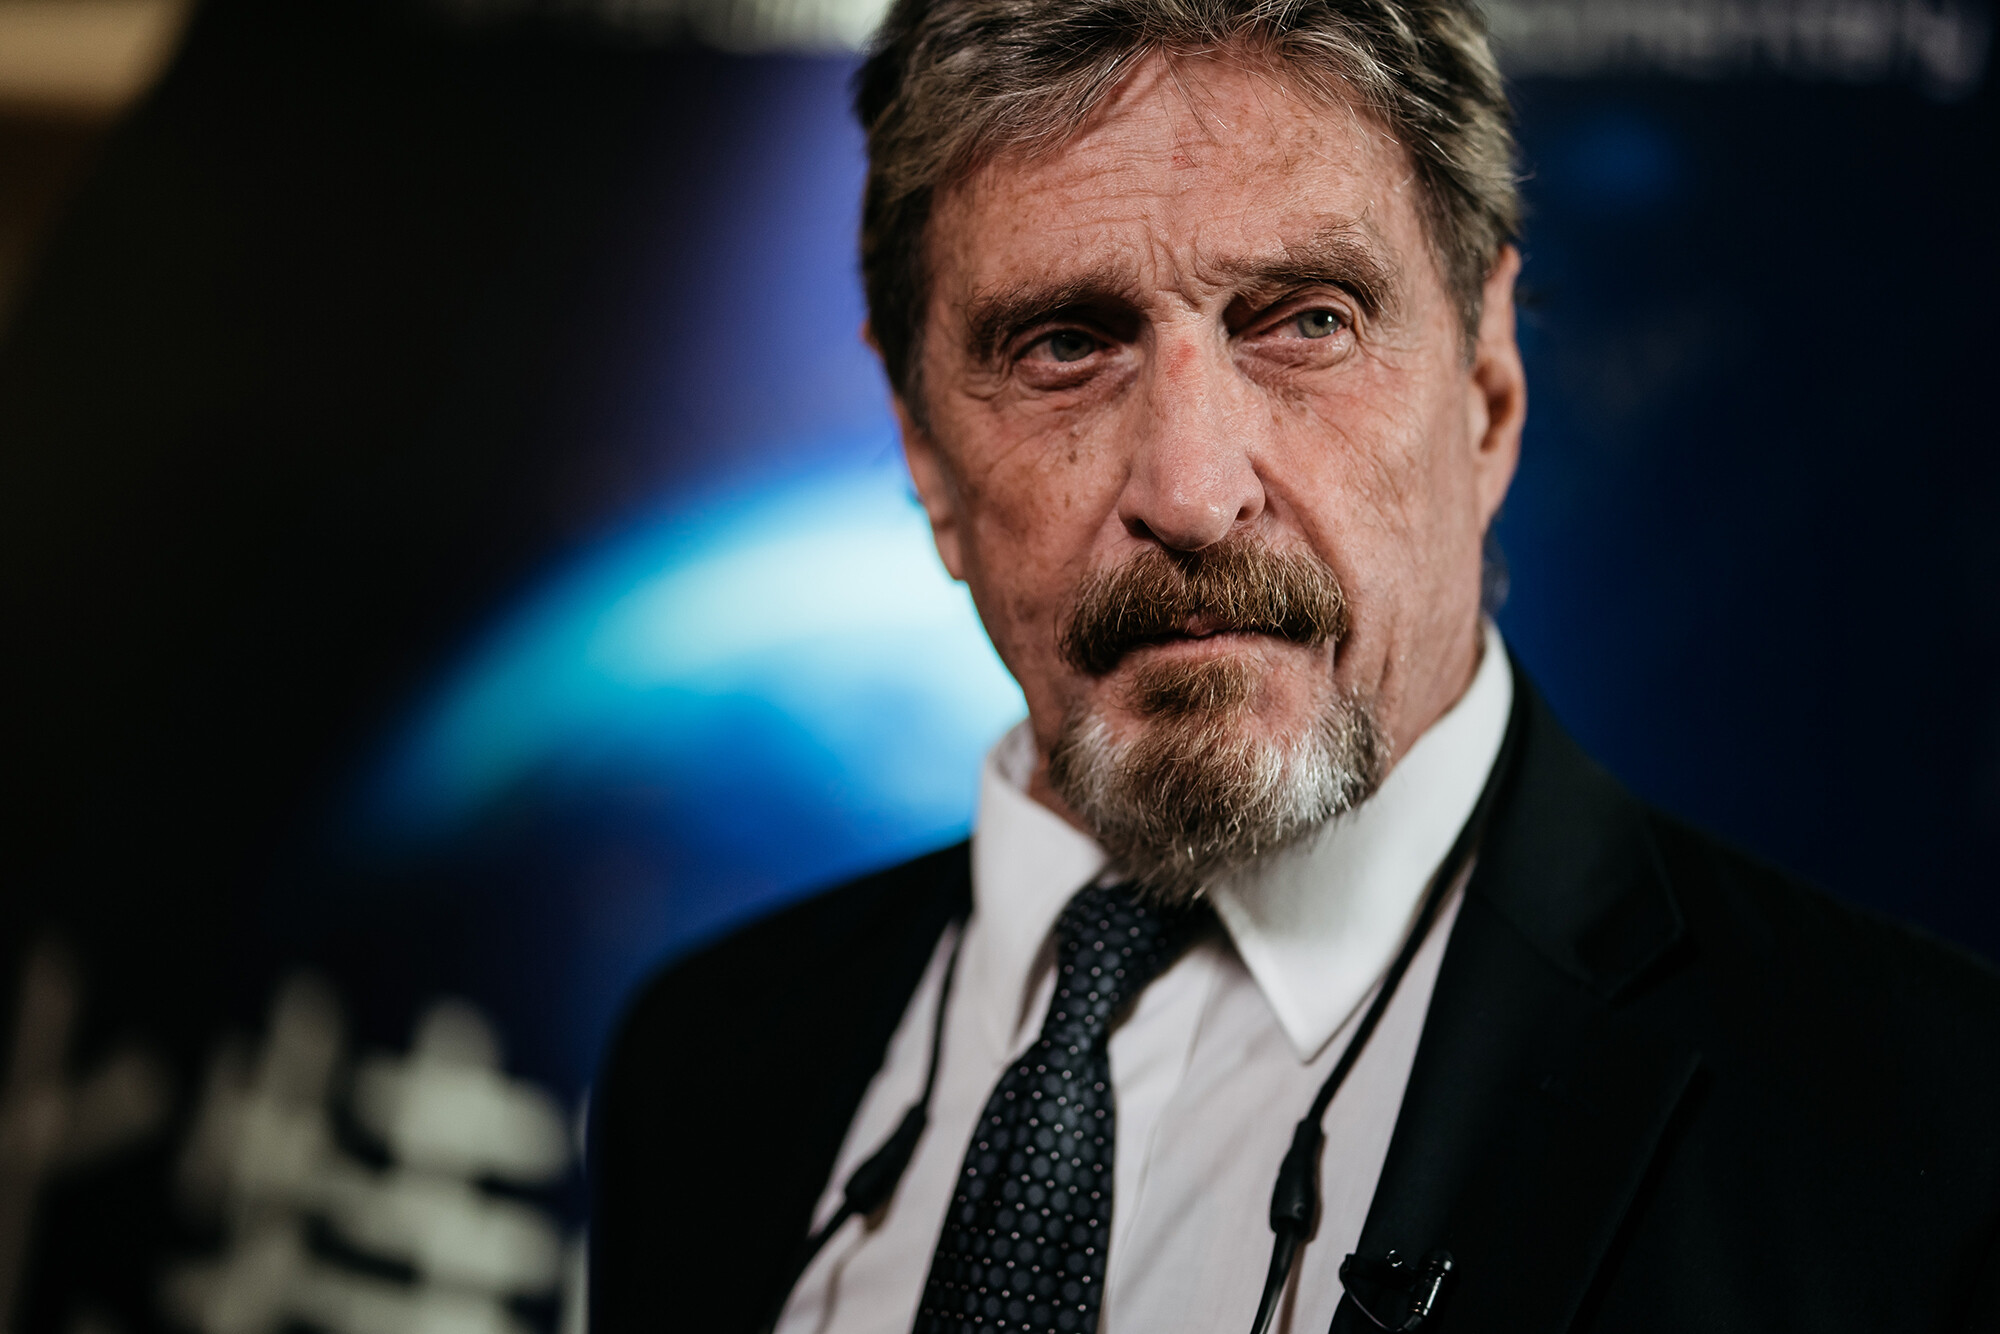 <i>Anthony Kwan/Bloomberg/Getty Images</i><br/>John McAfee